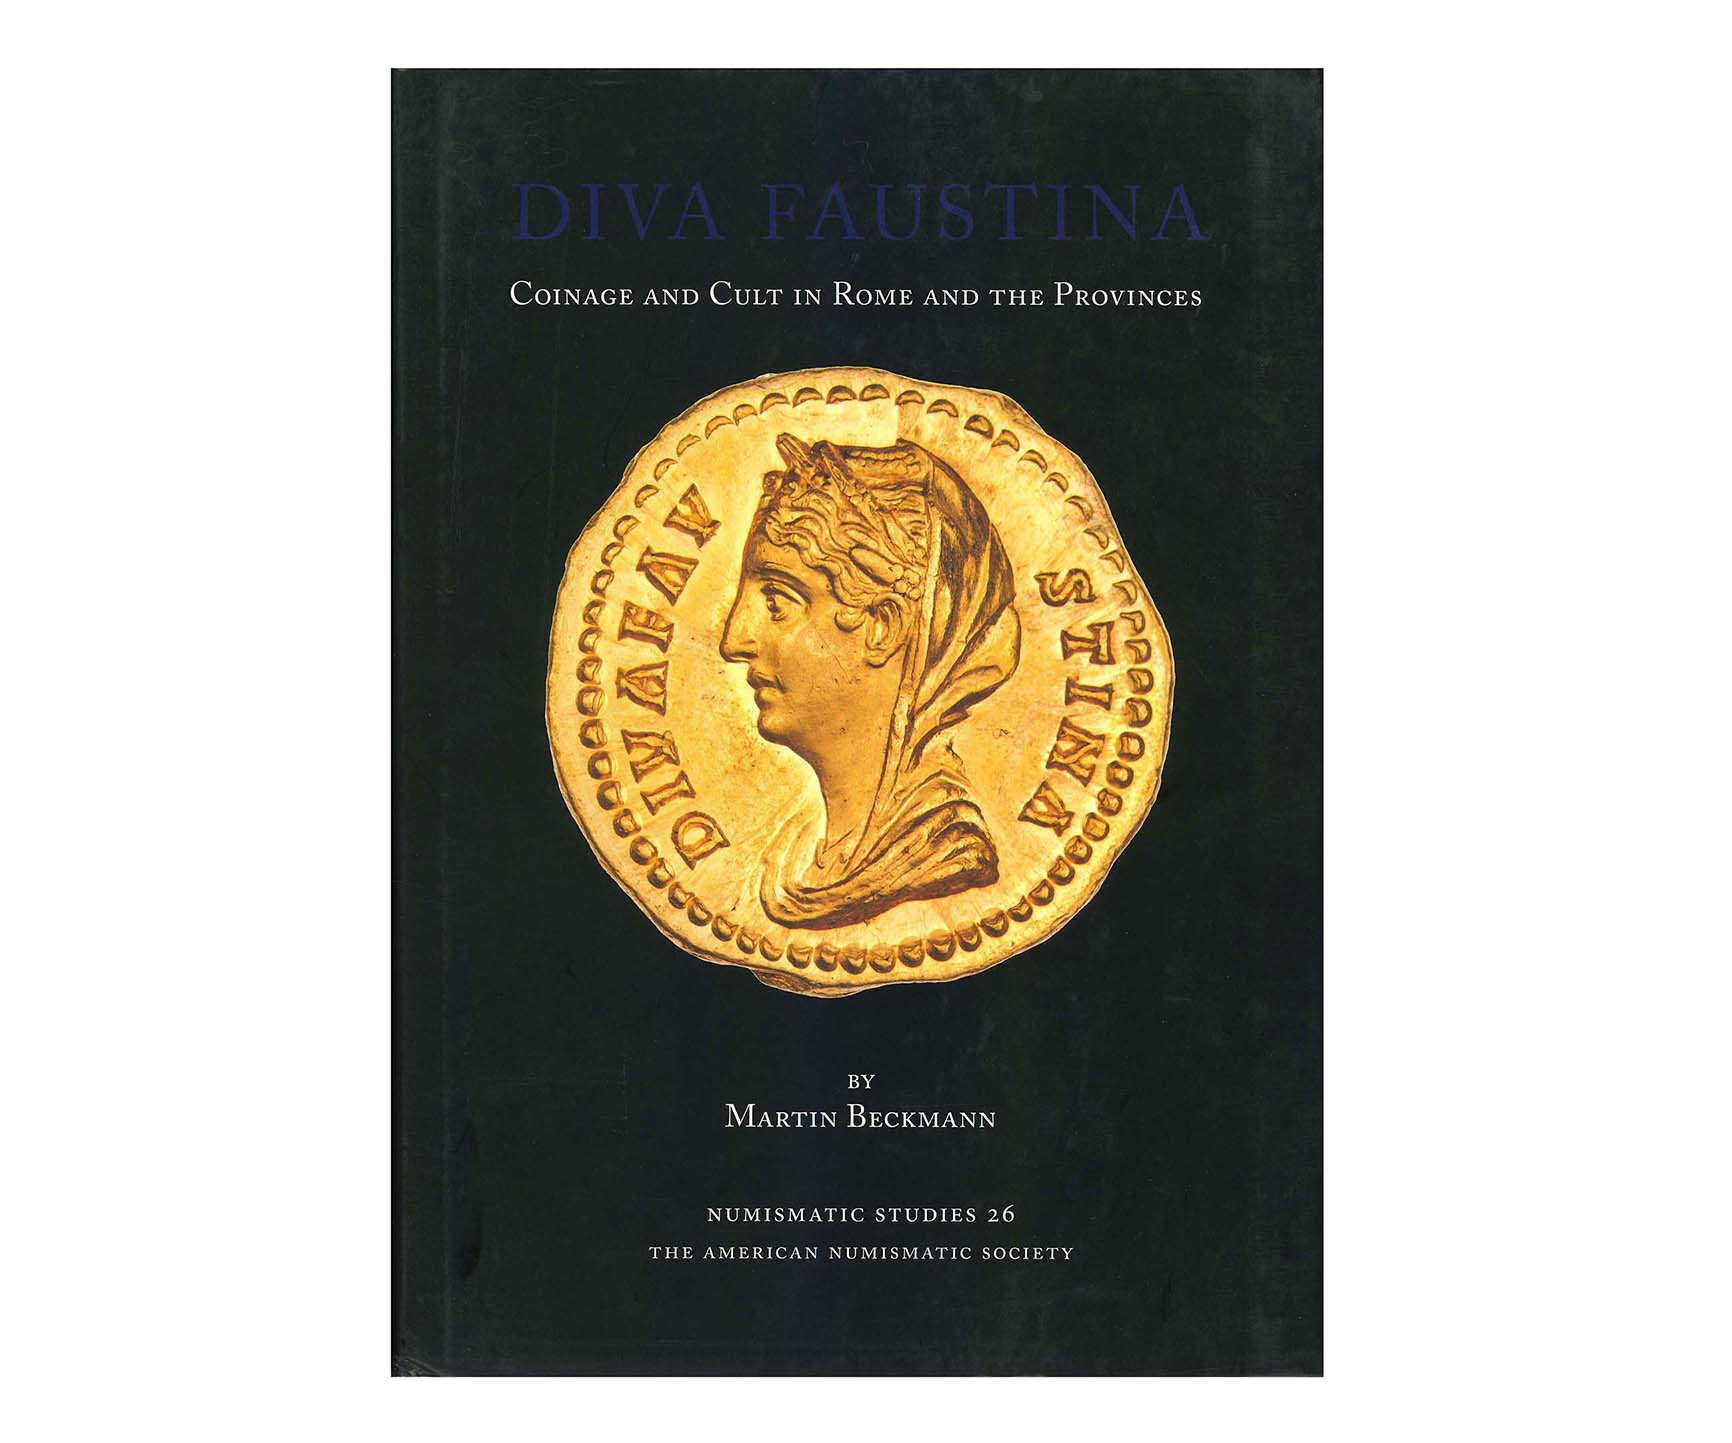 Diva Faustina. Coinage and Cult in Rome and the Provinces.